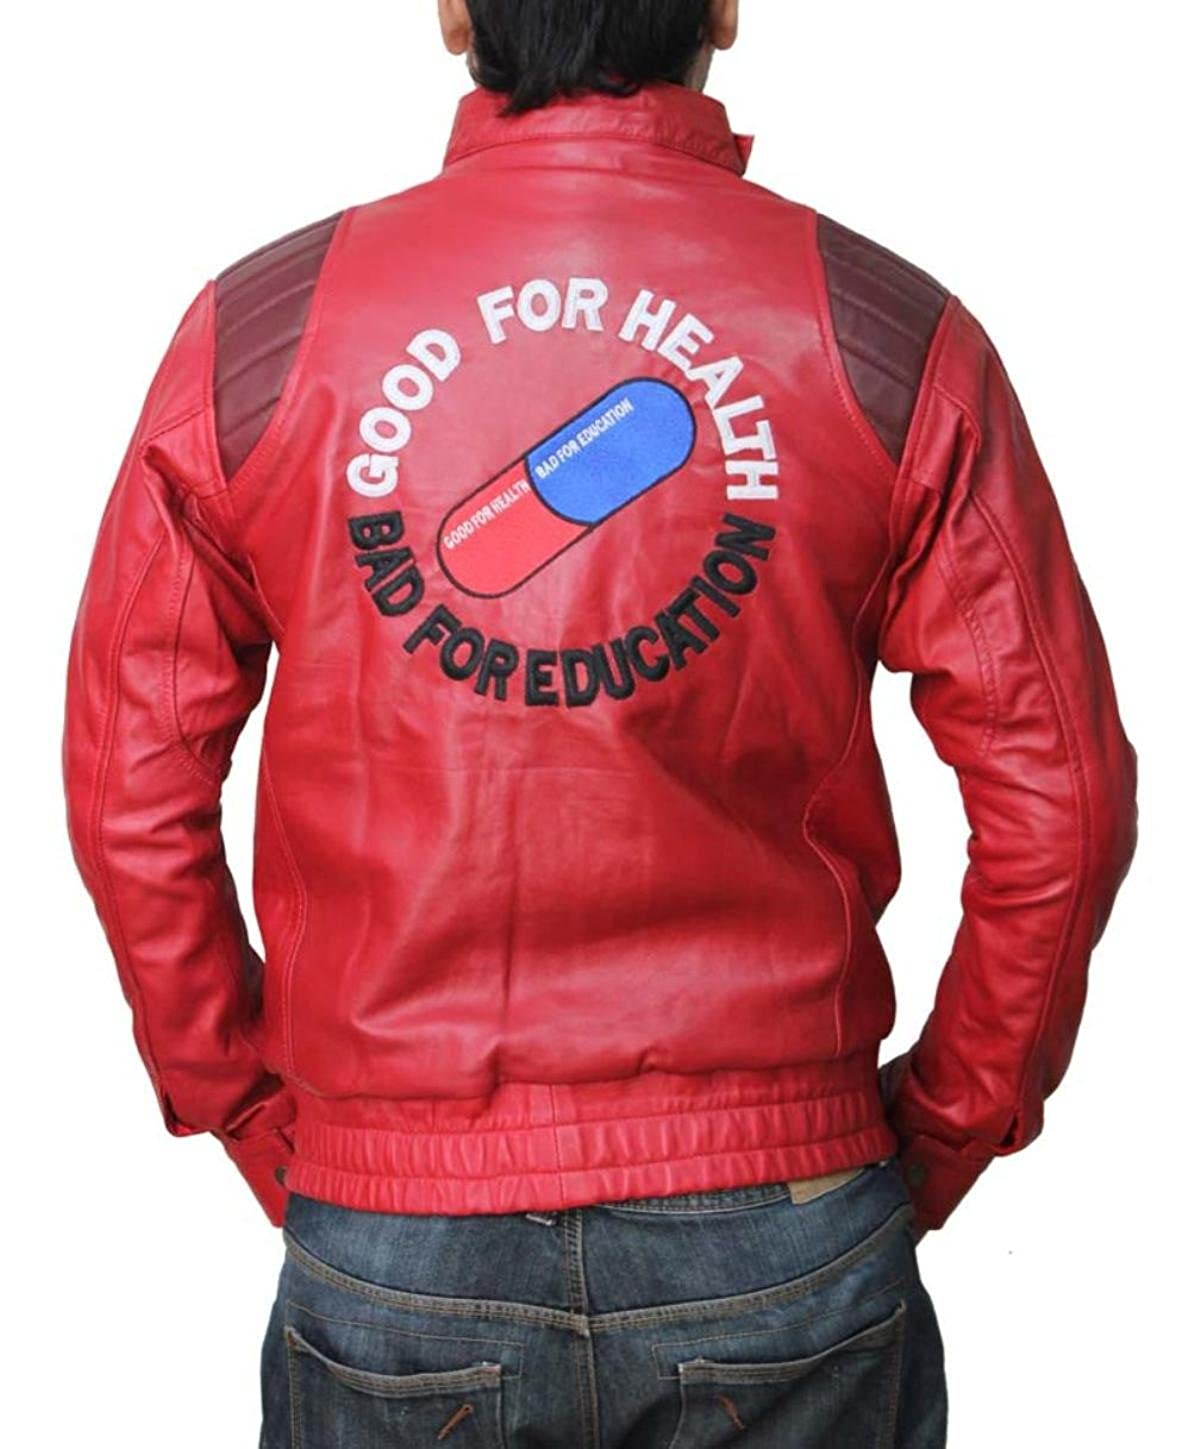 Red Leather Jacket - Mens Anime Motorcycle Good for Health Bad for Education Logo Costume Jacket FJ-RED_AKIRA-PP